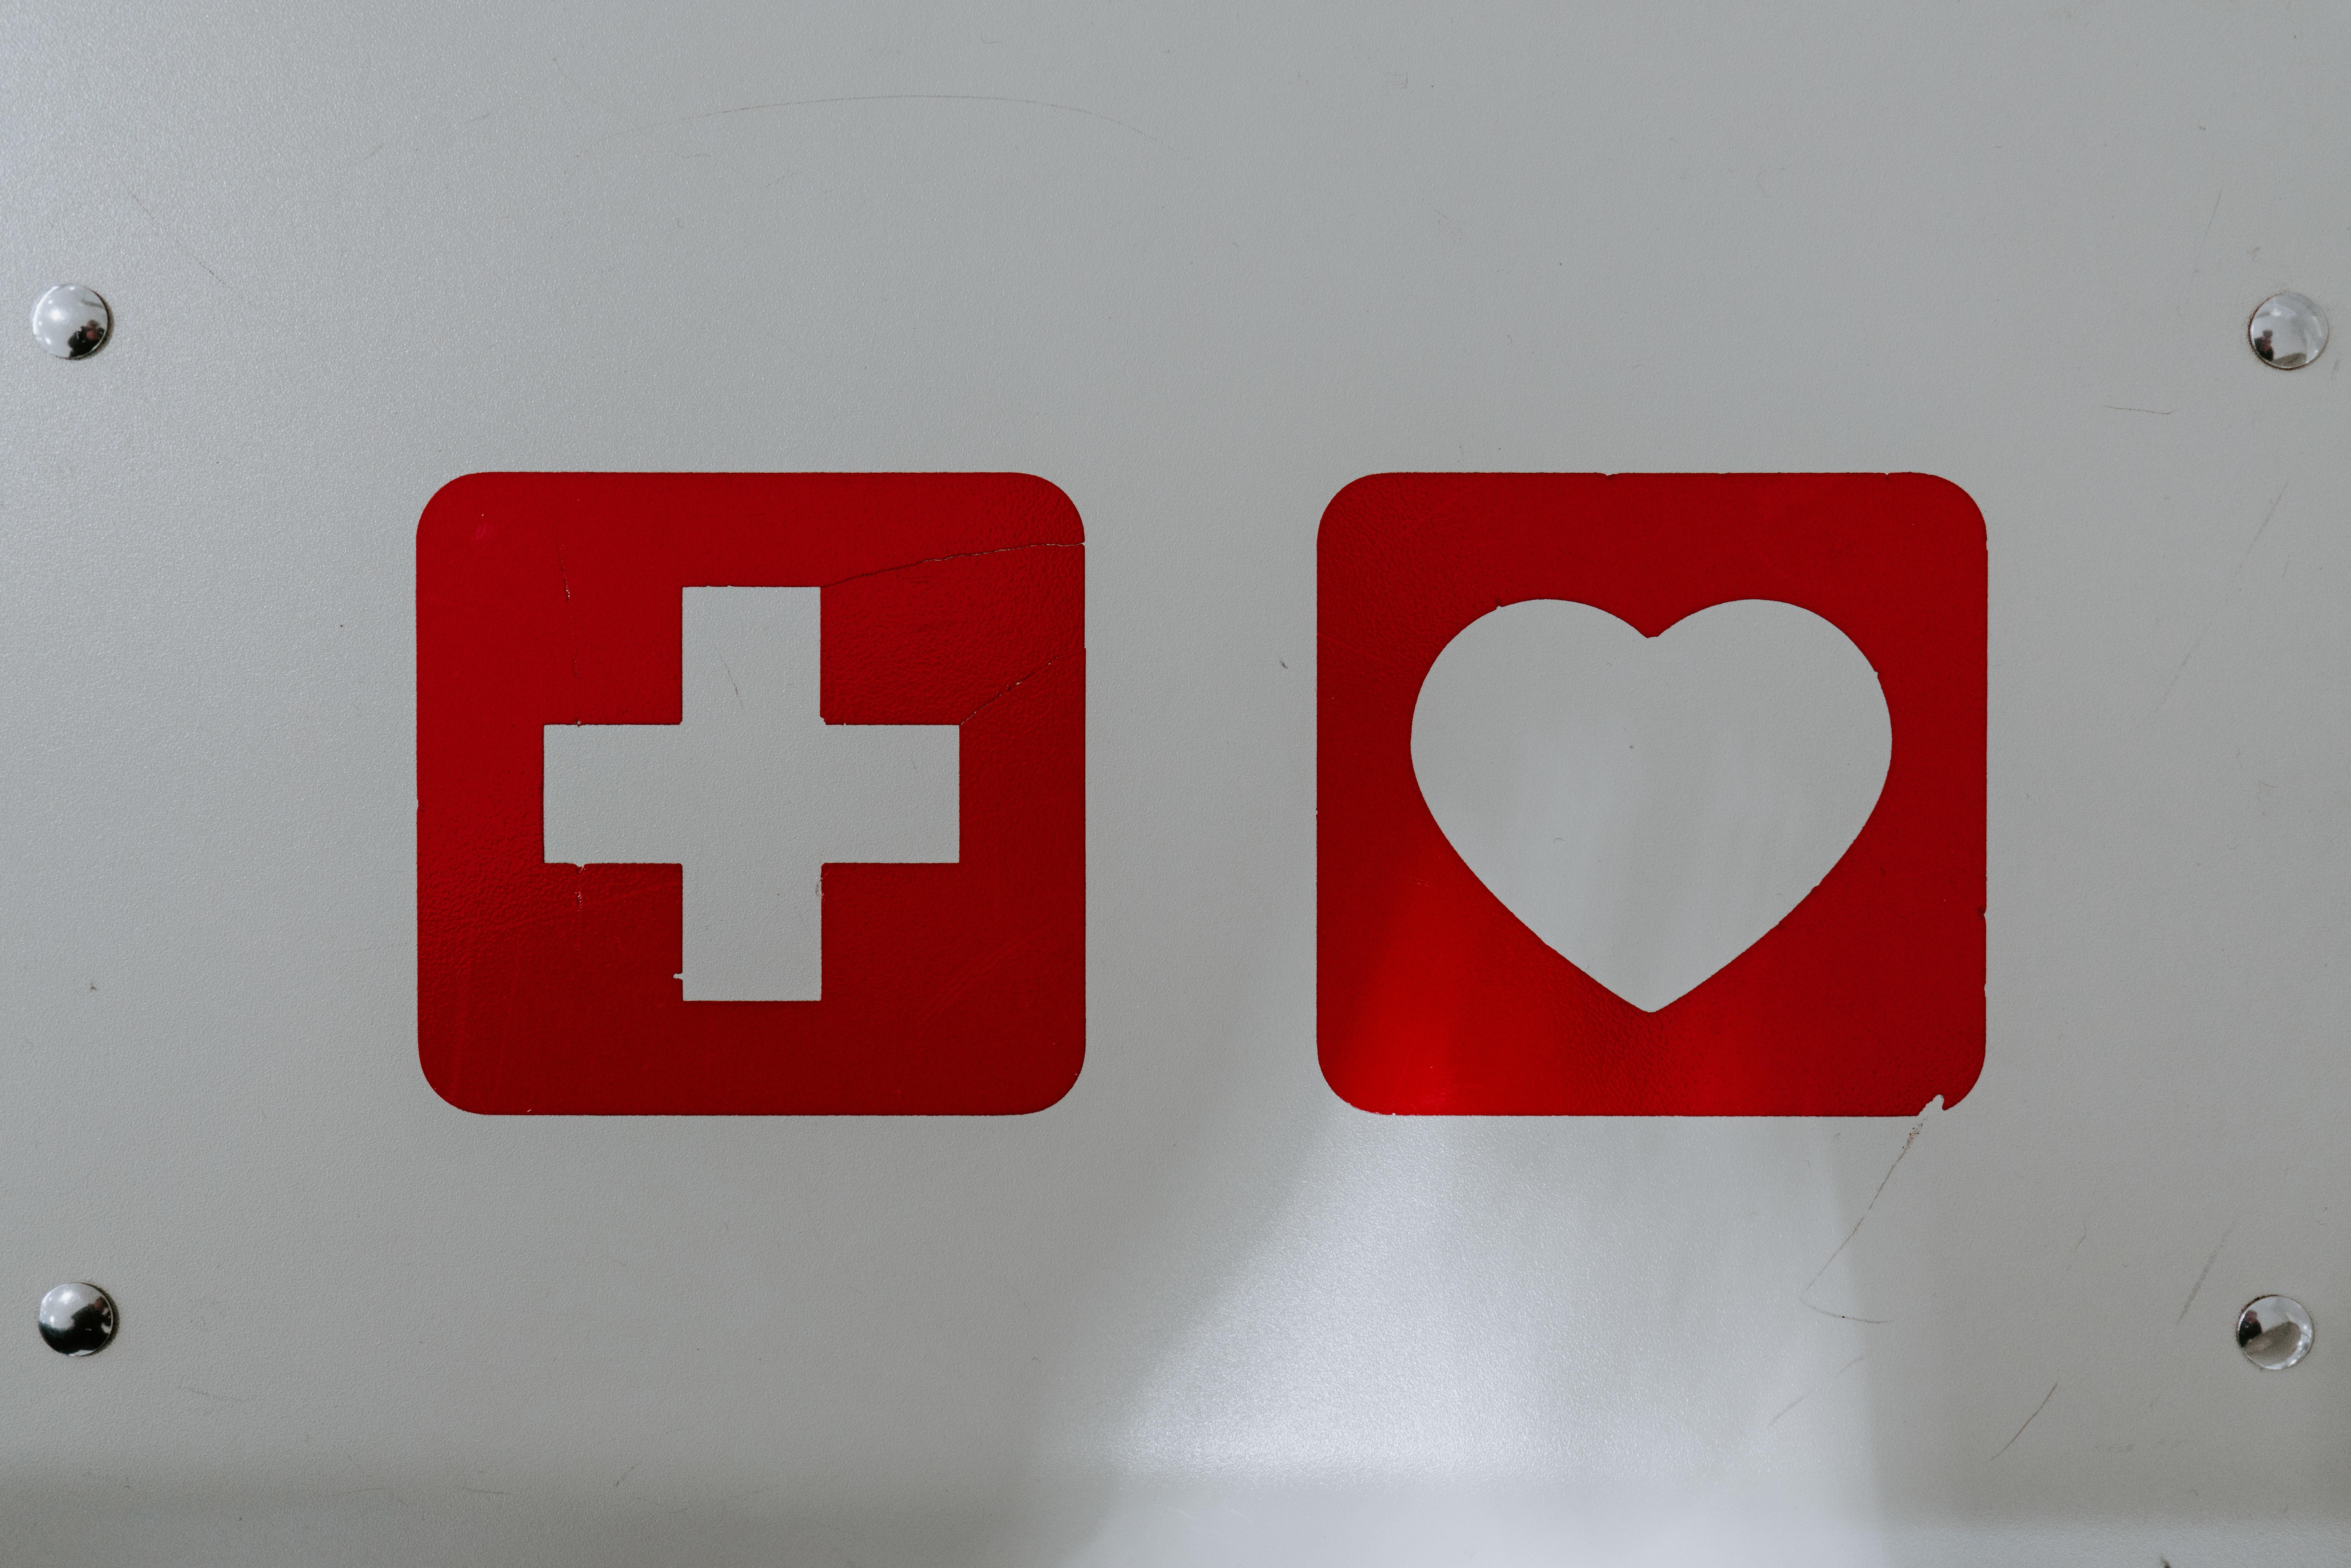 a medical sign and a heart symbol, red on white